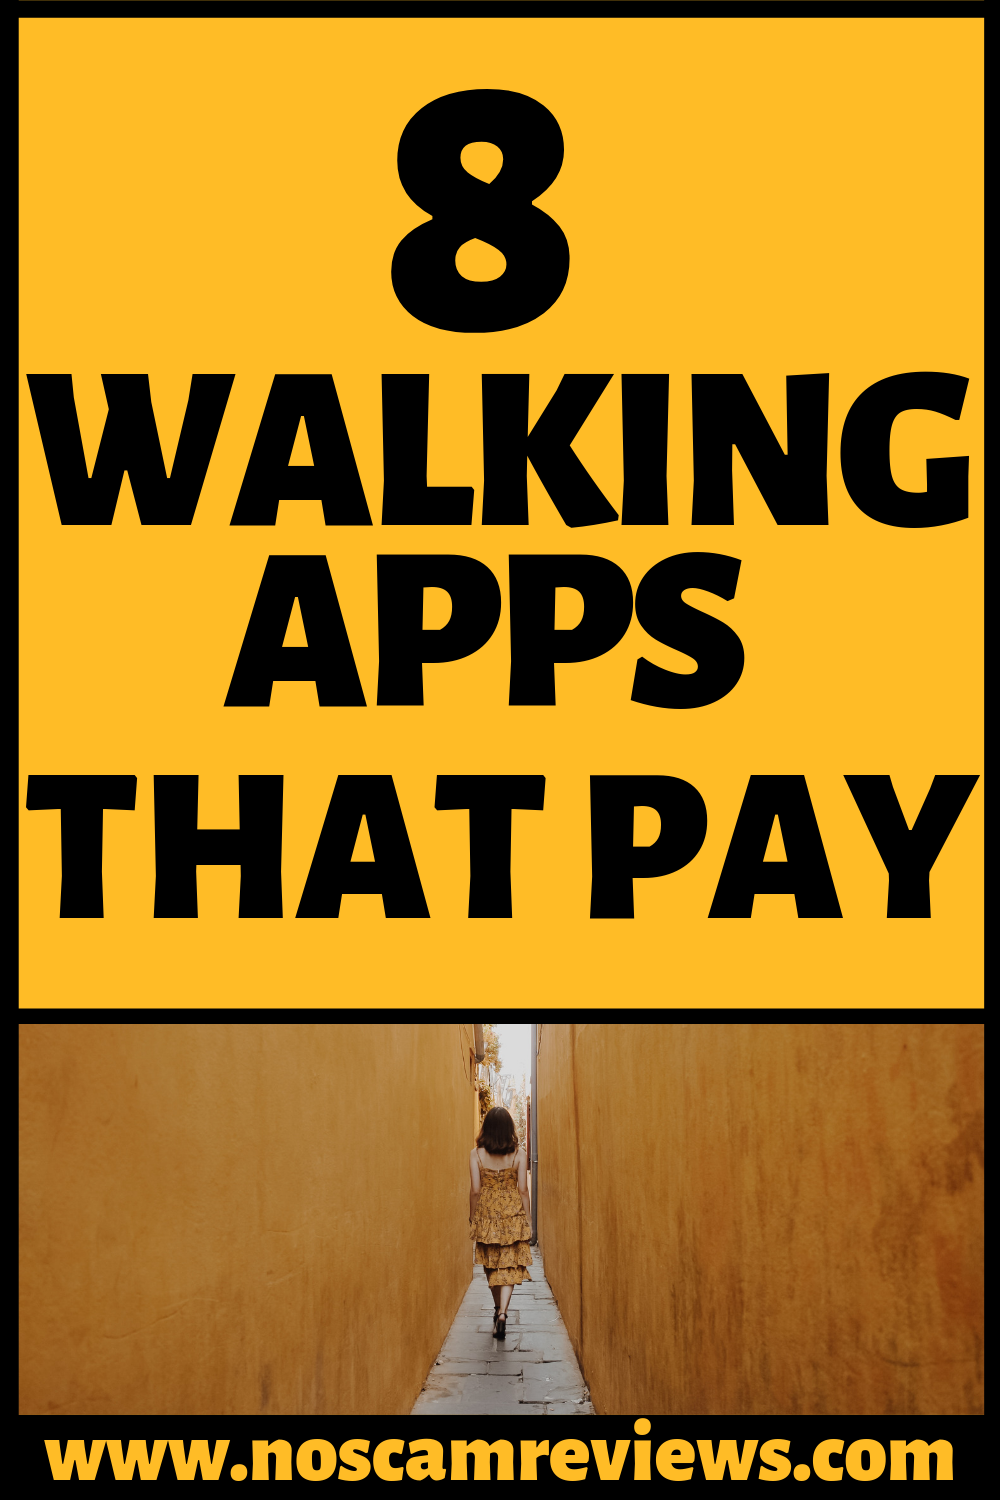 8 Legit Apps Where You Get Paid To Walk Apps that pay